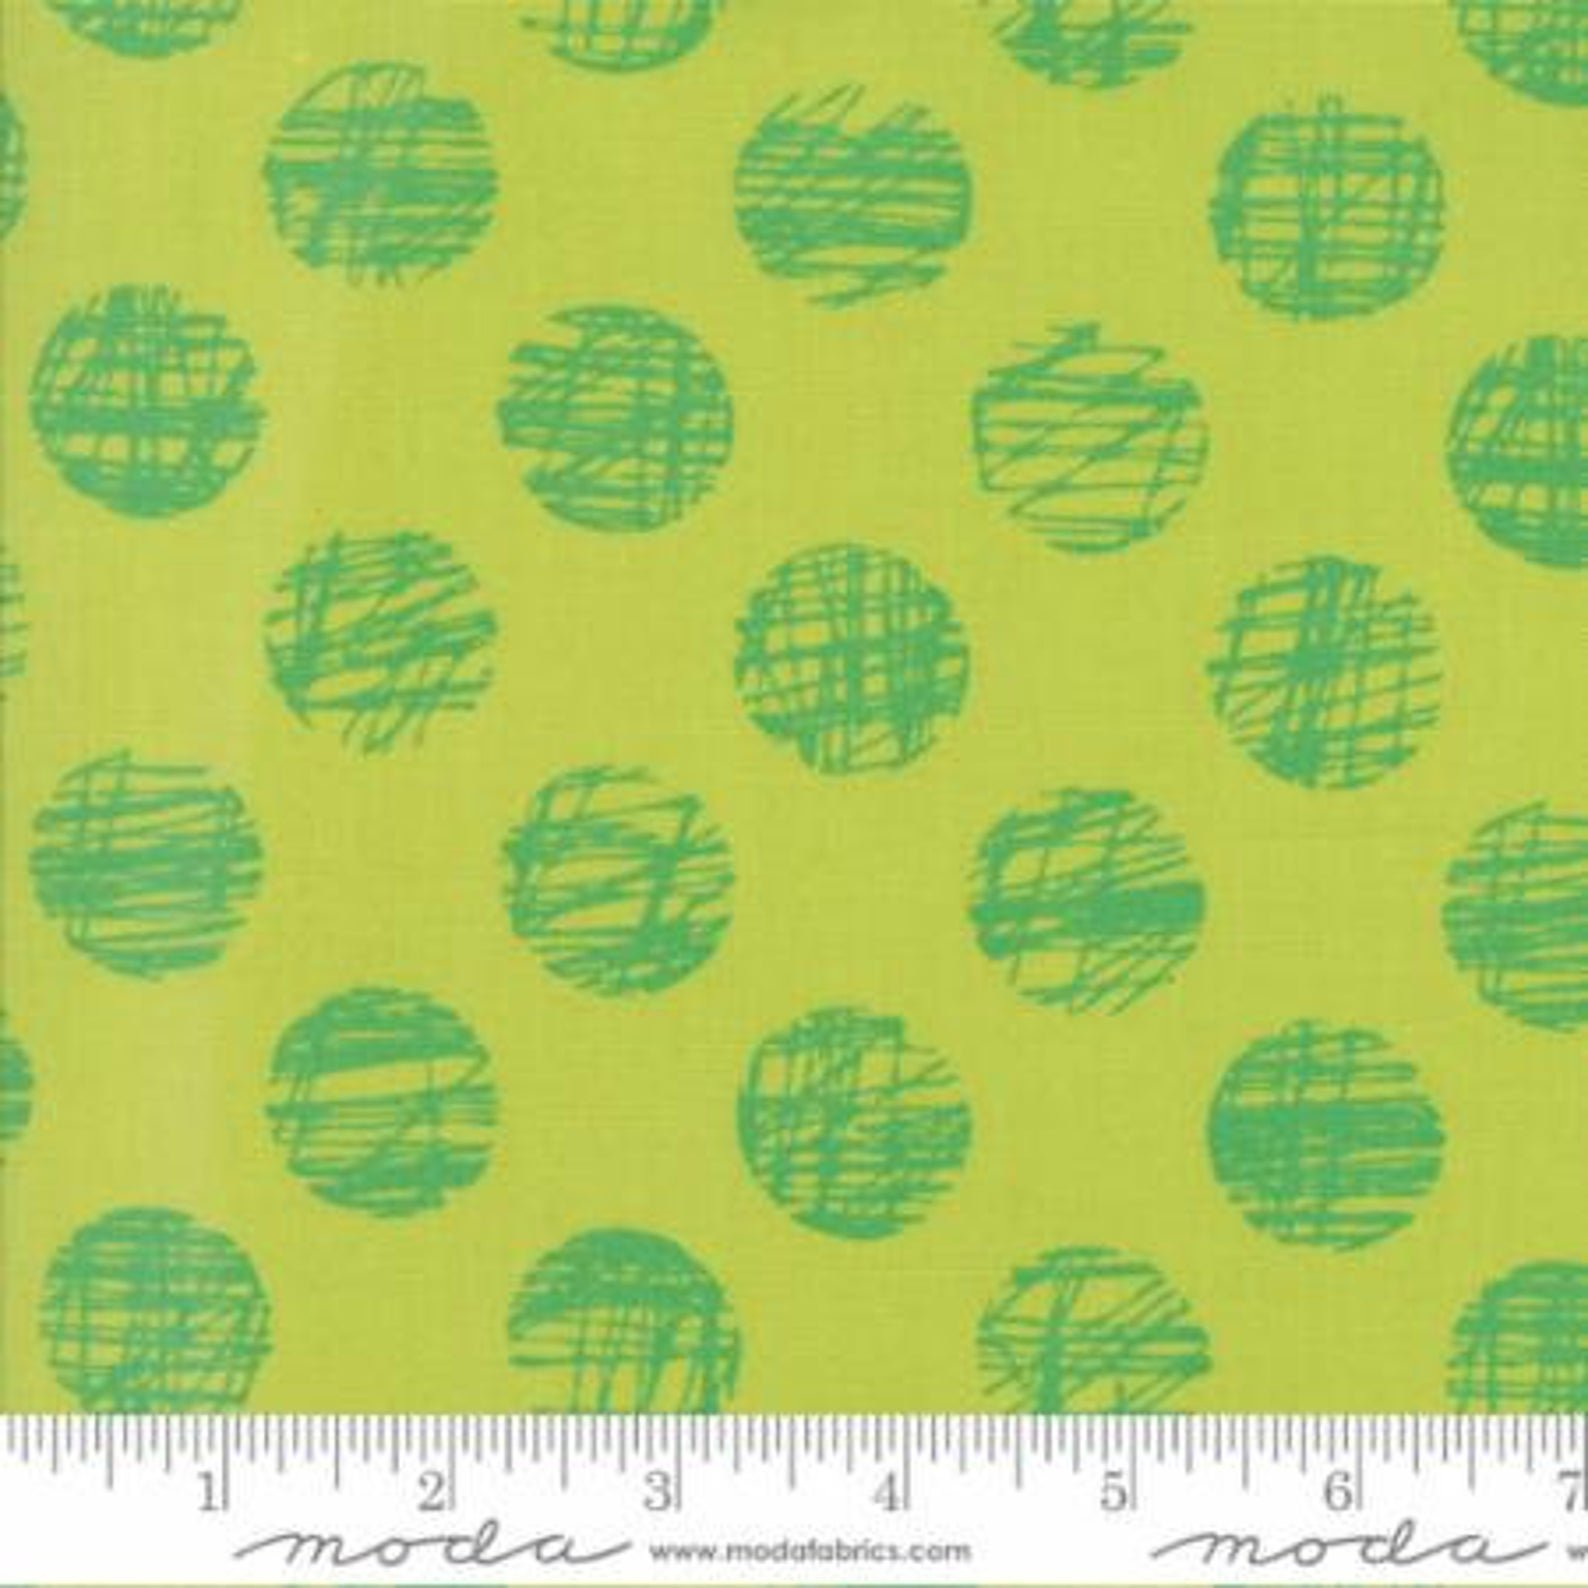 3 YARDS~Hey Dot - Sketched - Mint